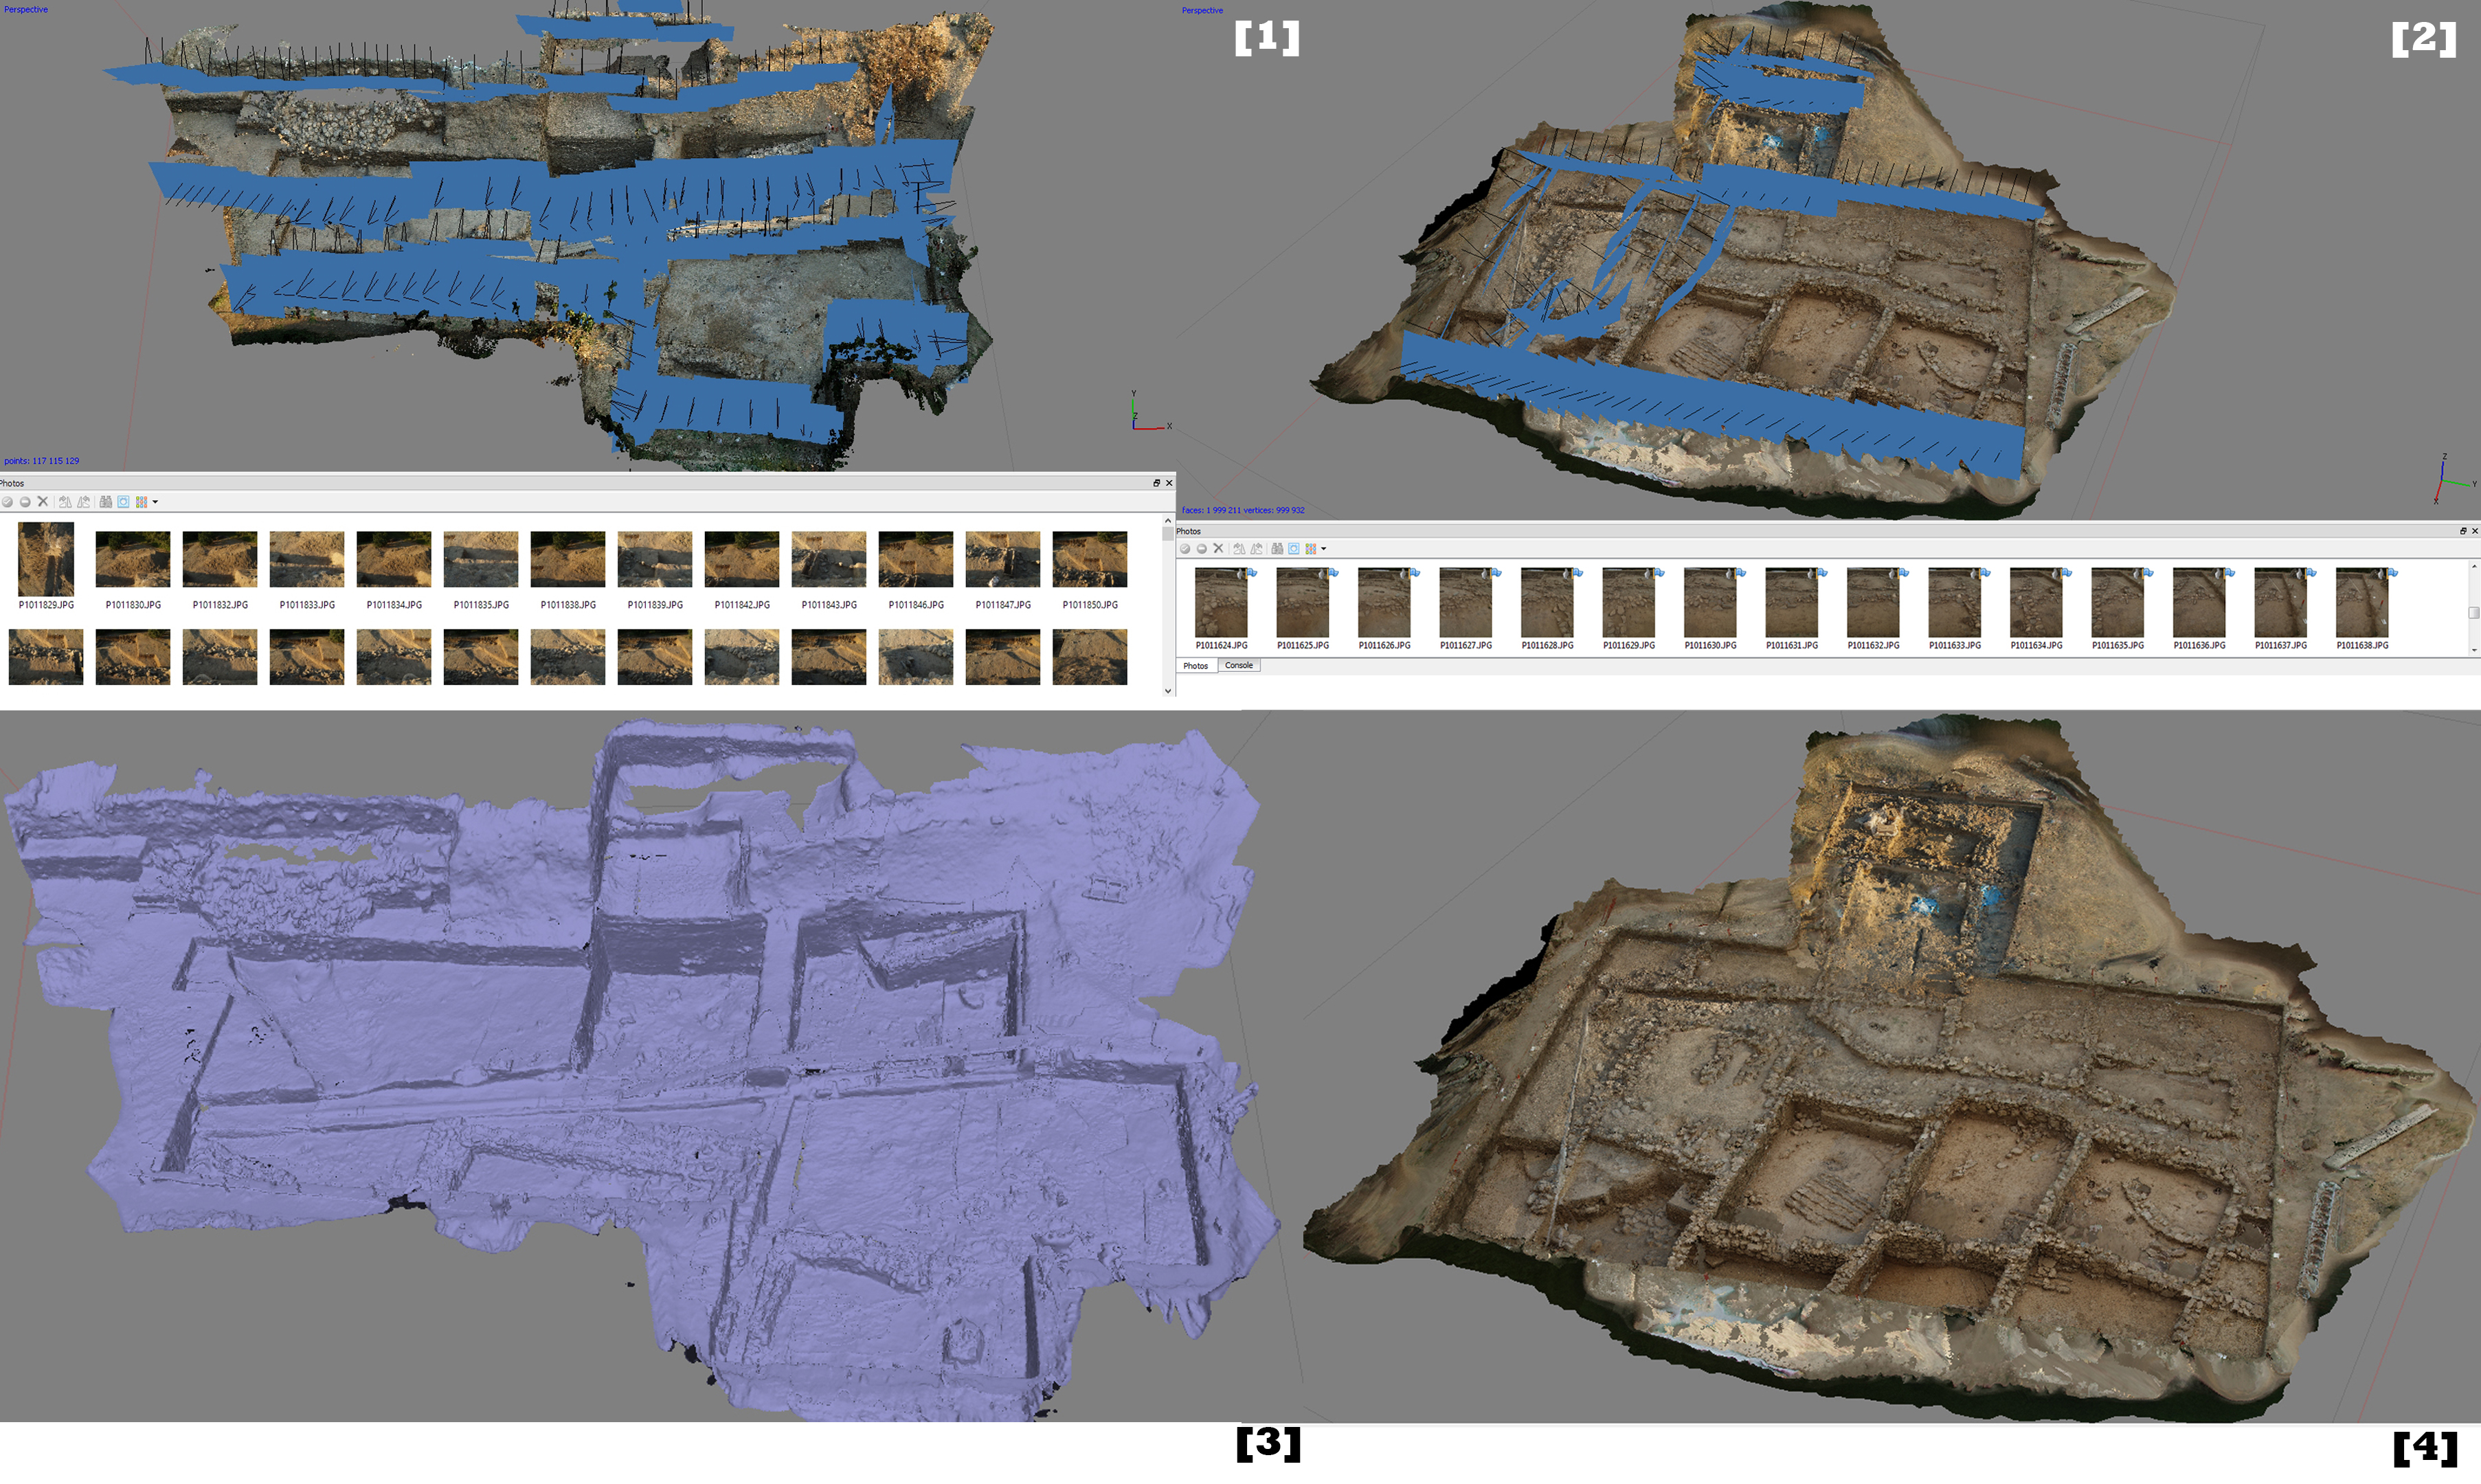 Processing of the Çukuriçi Höyük excavation area SfM model